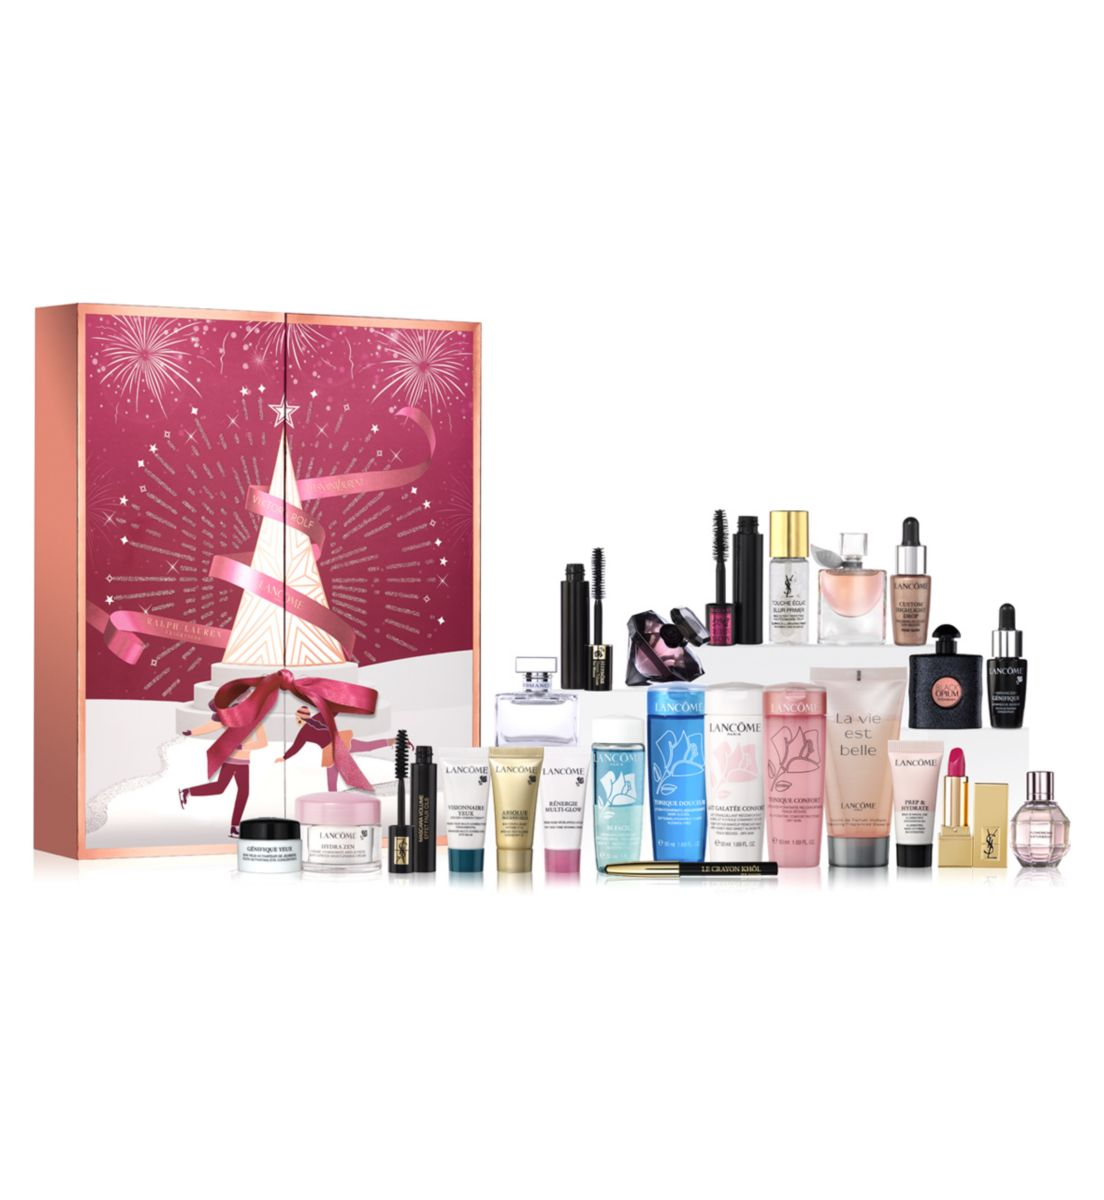 Best Makeup Christmas Gifts 2020 94 Best Beauty Advent Calendars for Christmas 2020   Hot Beauty